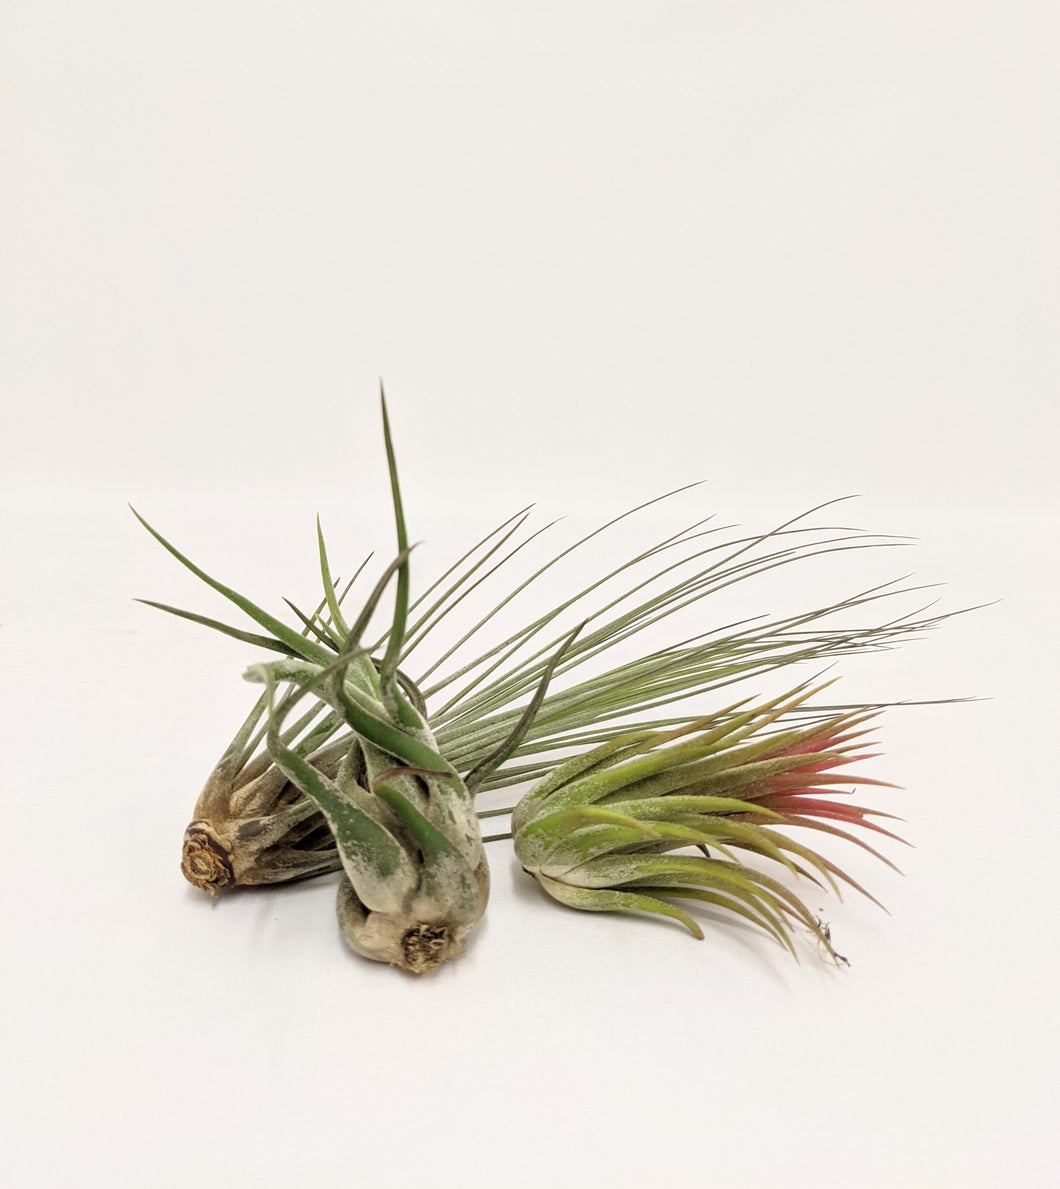 Tillandsia air plants - lucky dip